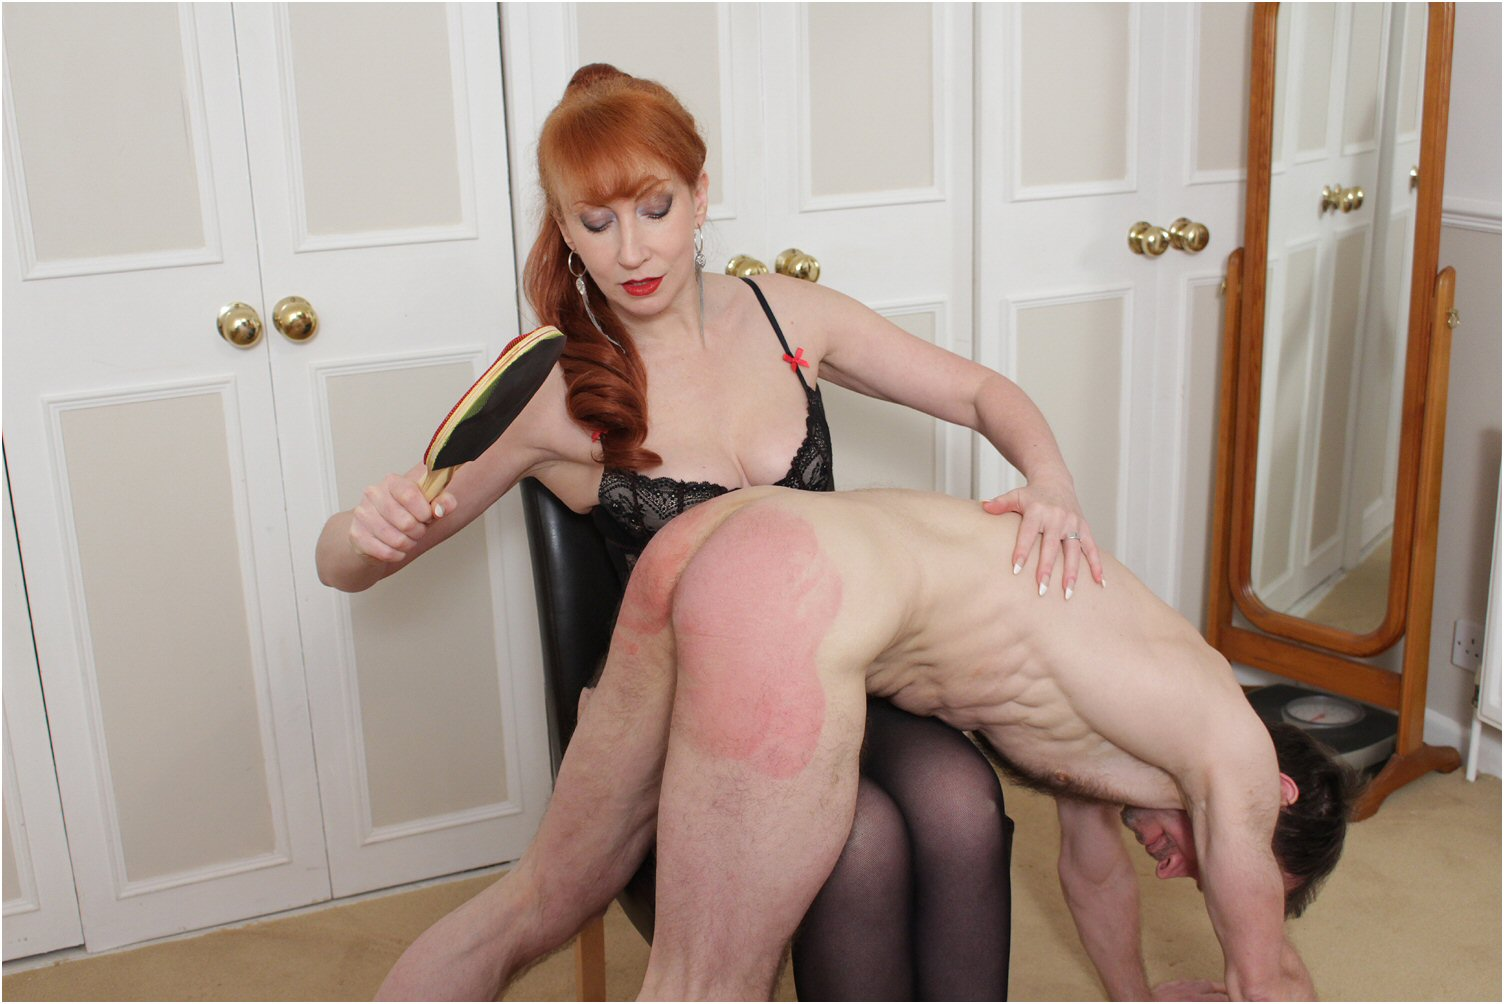 Women who love to spank